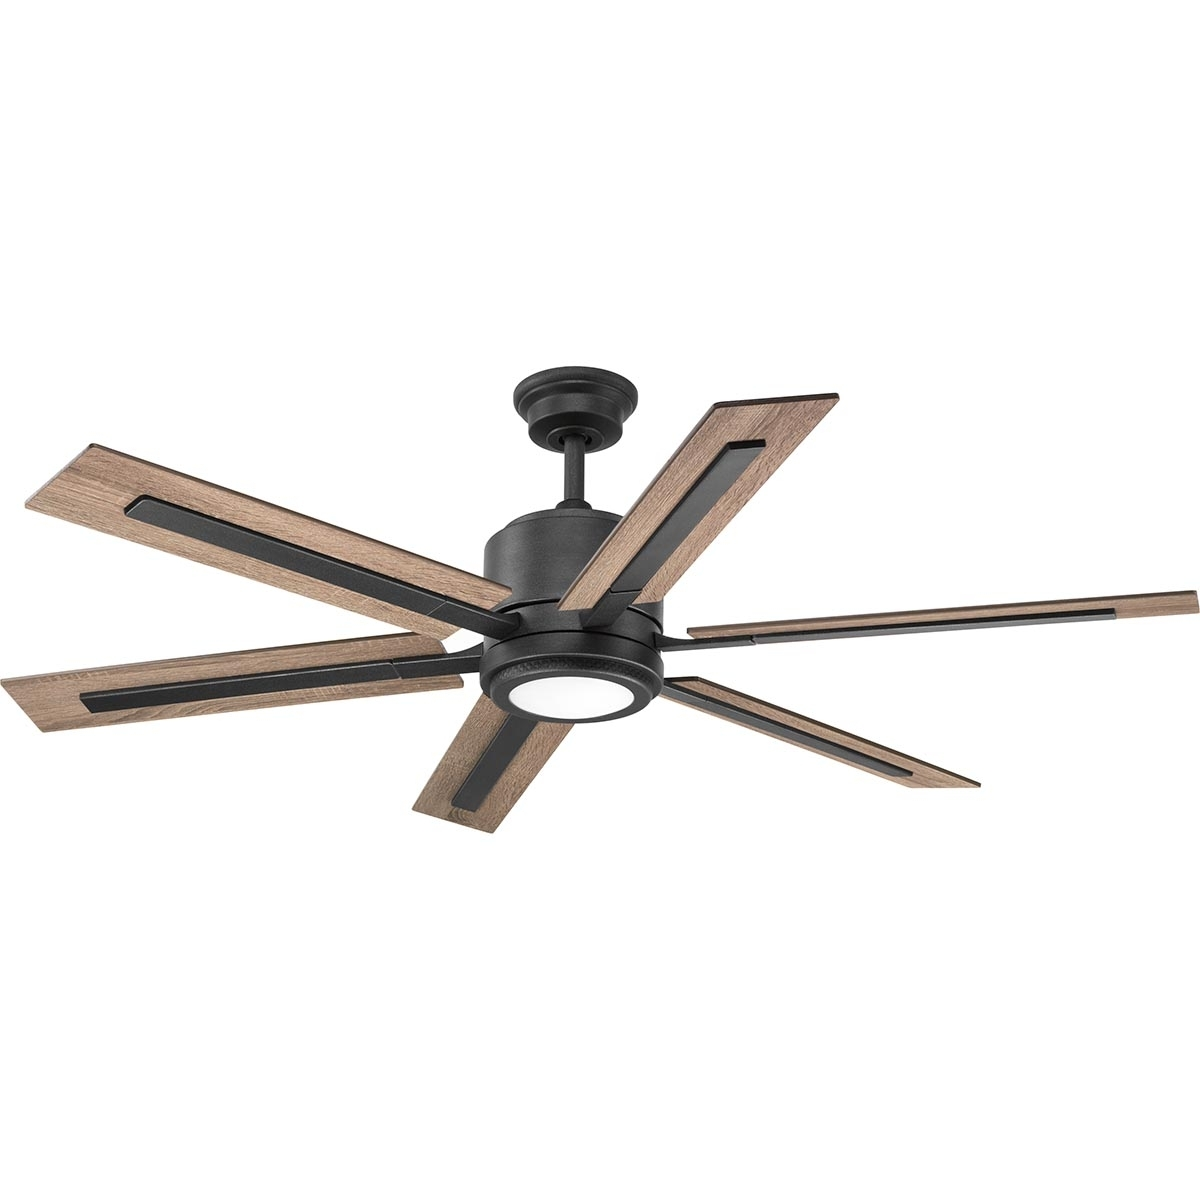 Famous Vintage Look Outdoor Ceiling Fans For Ceiling Fans – Progress Lighting (View 17 of 20)